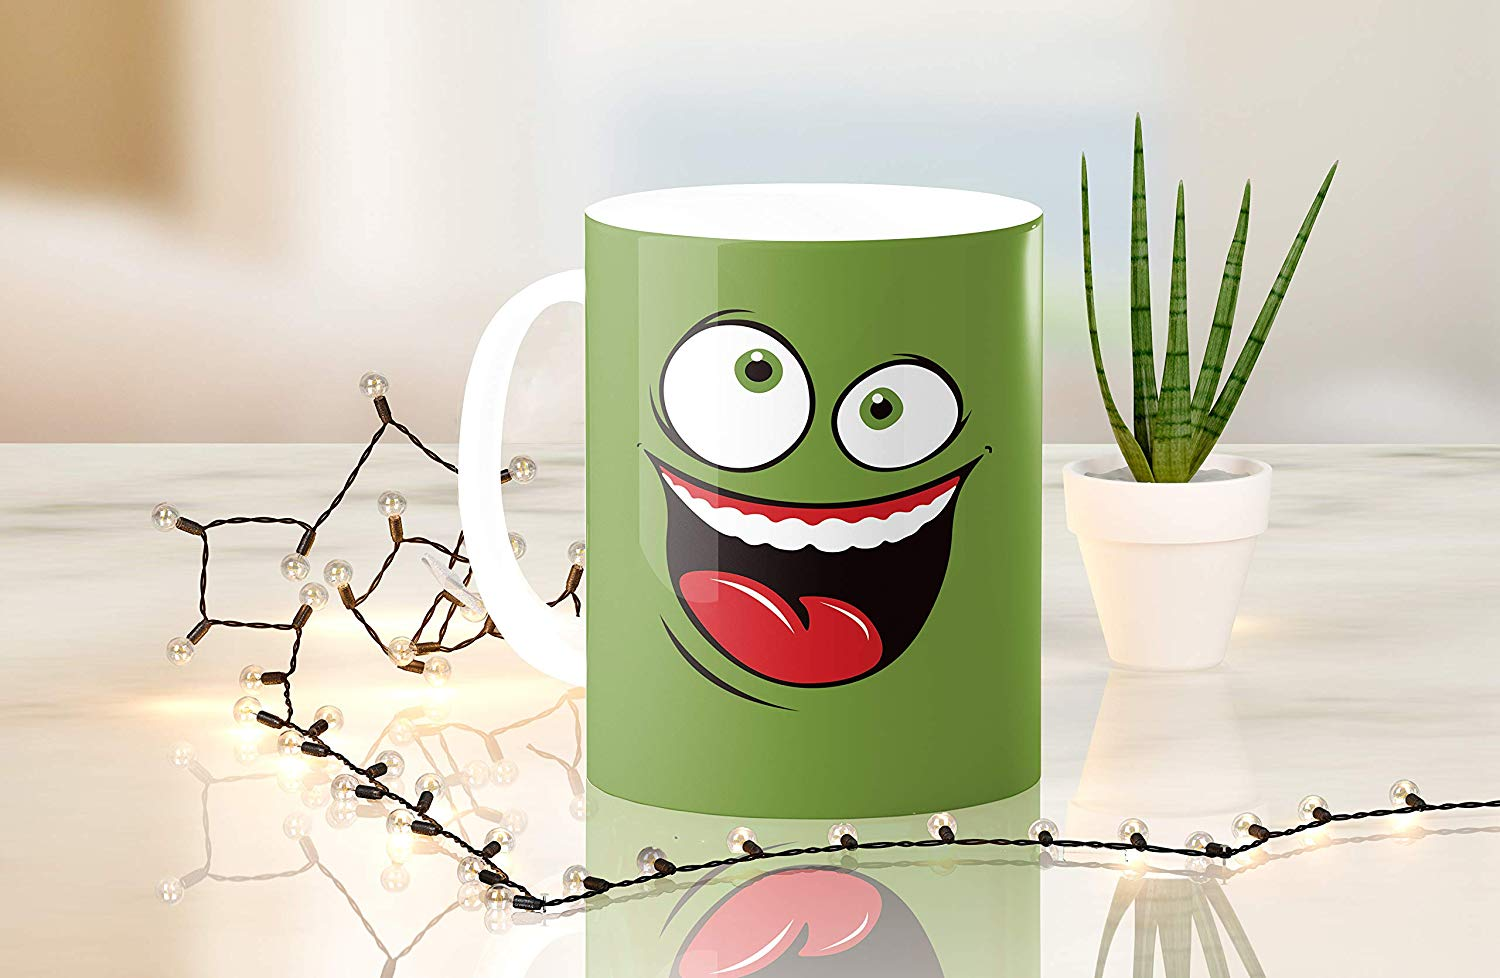 Heat Sensitive Color Changing Coffee Mug Funny Coffee Cup Green Happy Funny Face Design Funny Gift Idea B079FR15QX 4